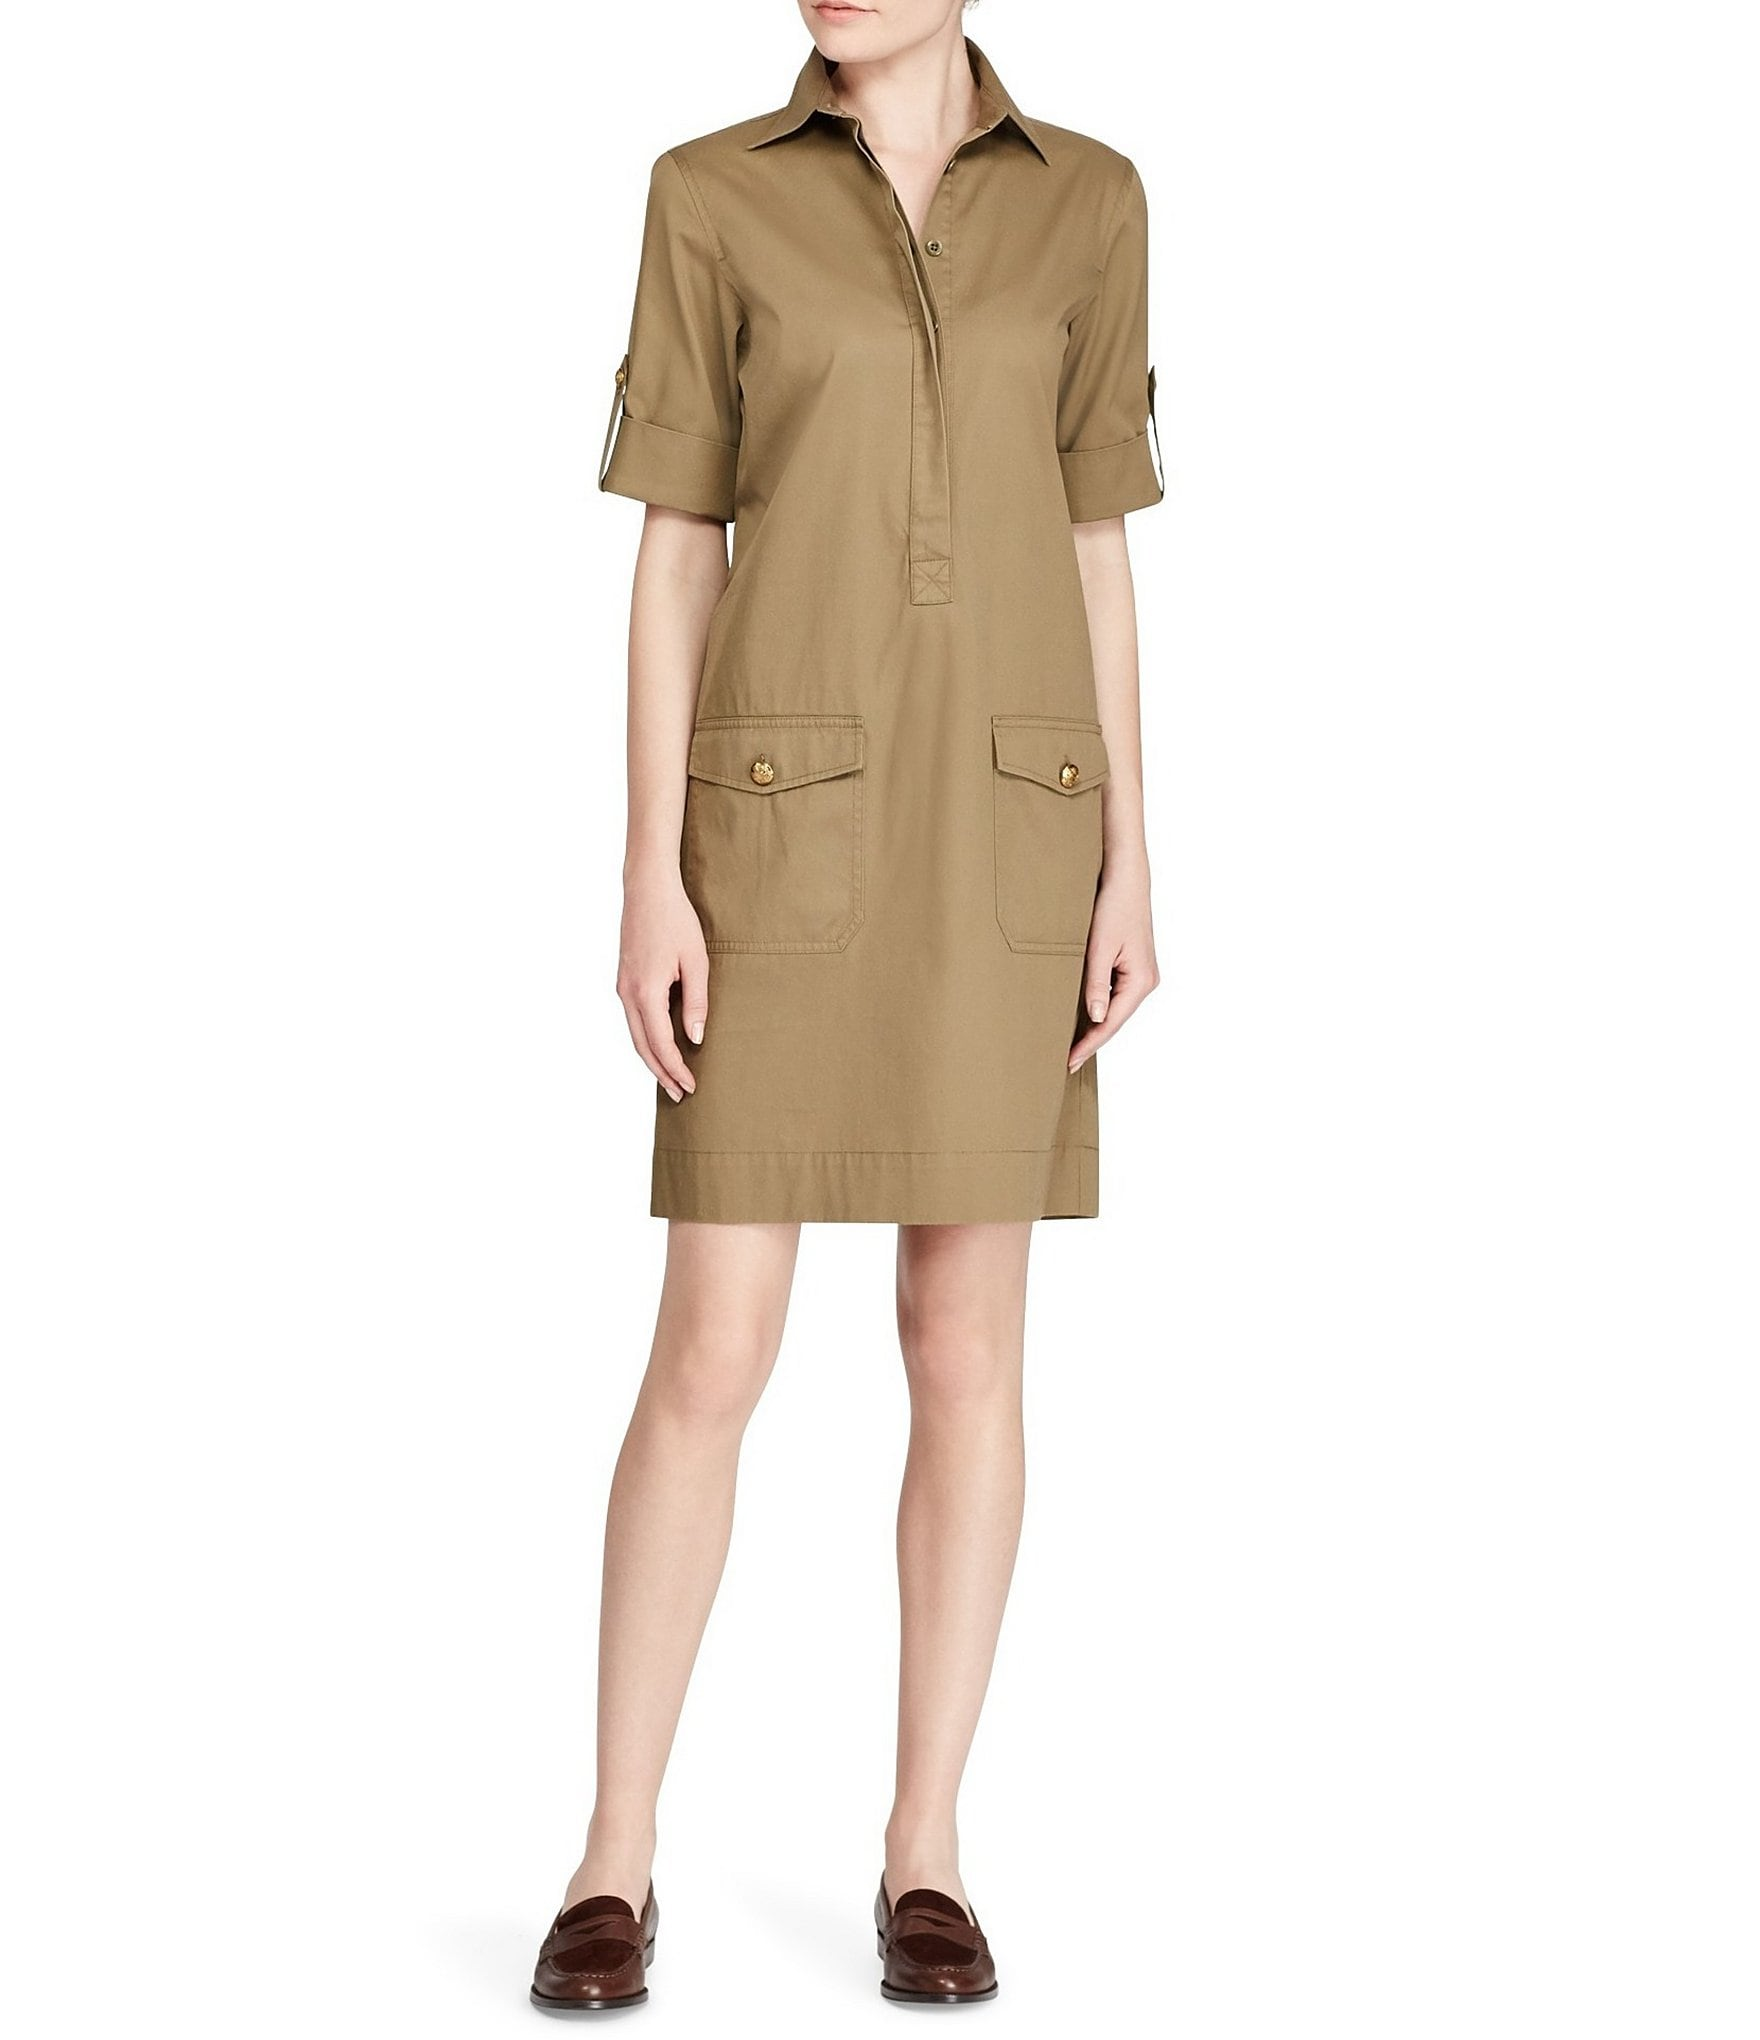 Lauren Ralph Lauren Väskor : Lauren ralph cotton twill shift dress dillards